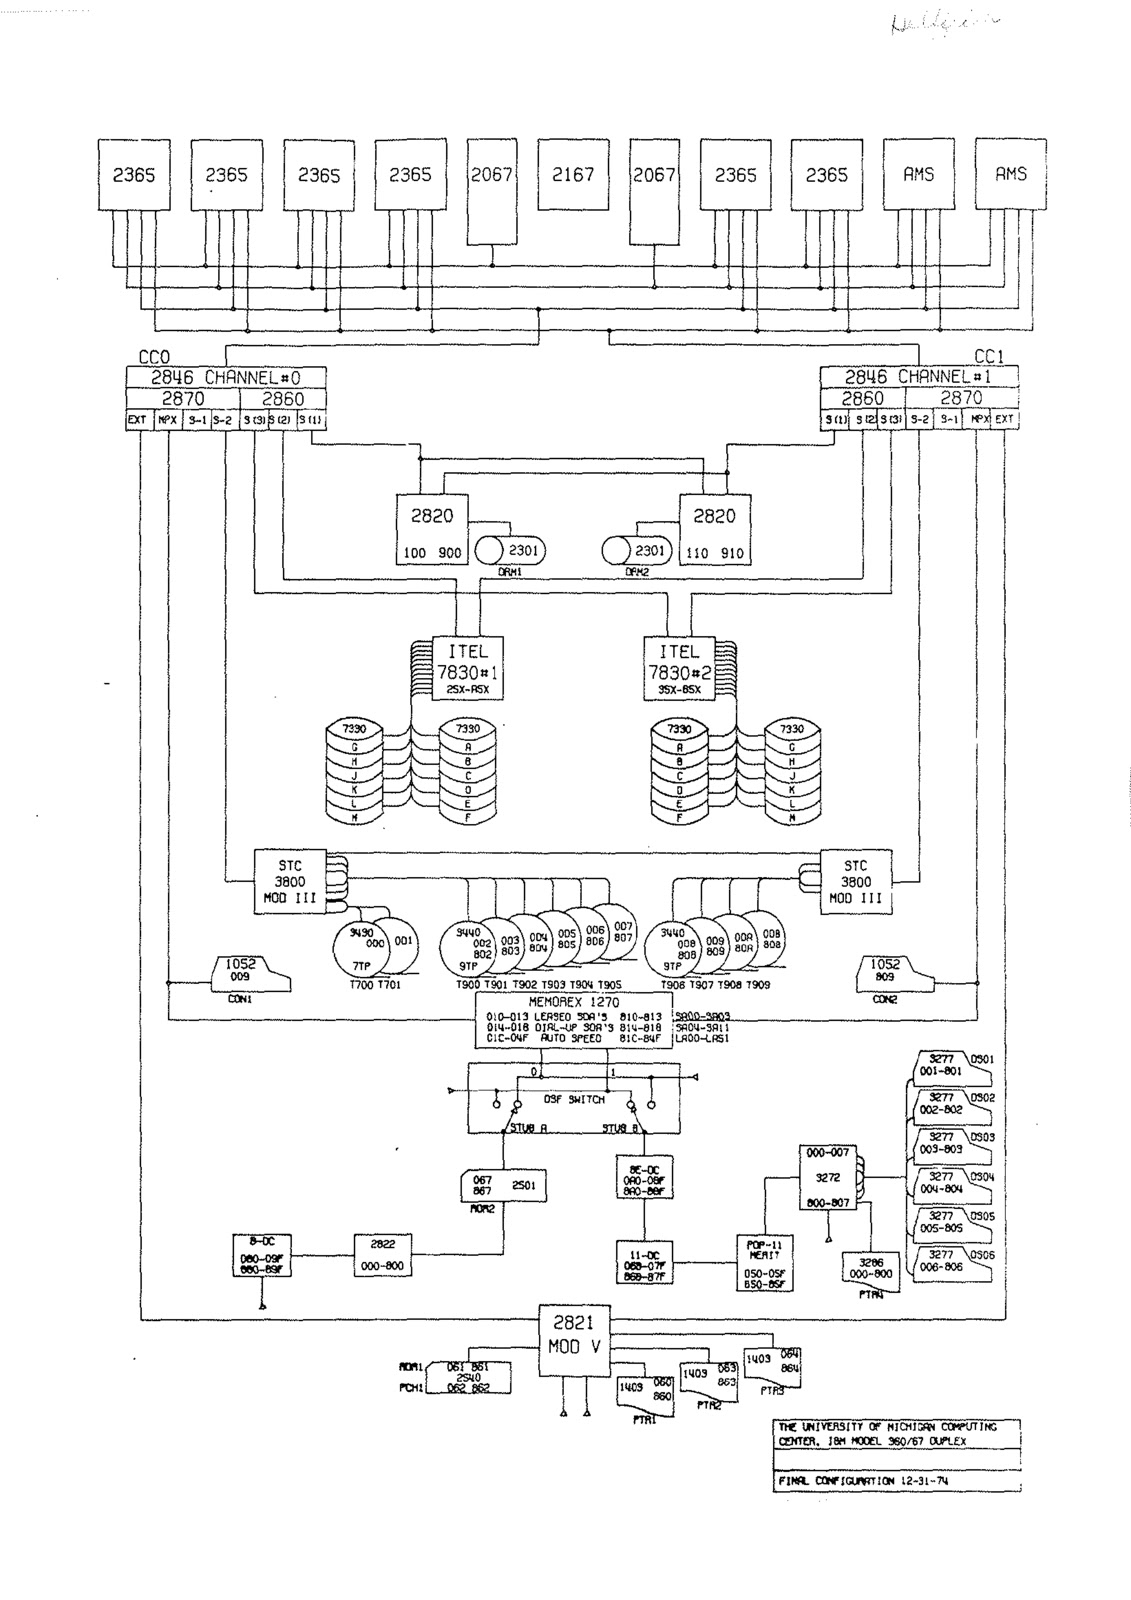 Hardware configuration diagram for the IBM S/360-67 computer at U-M in December 1974